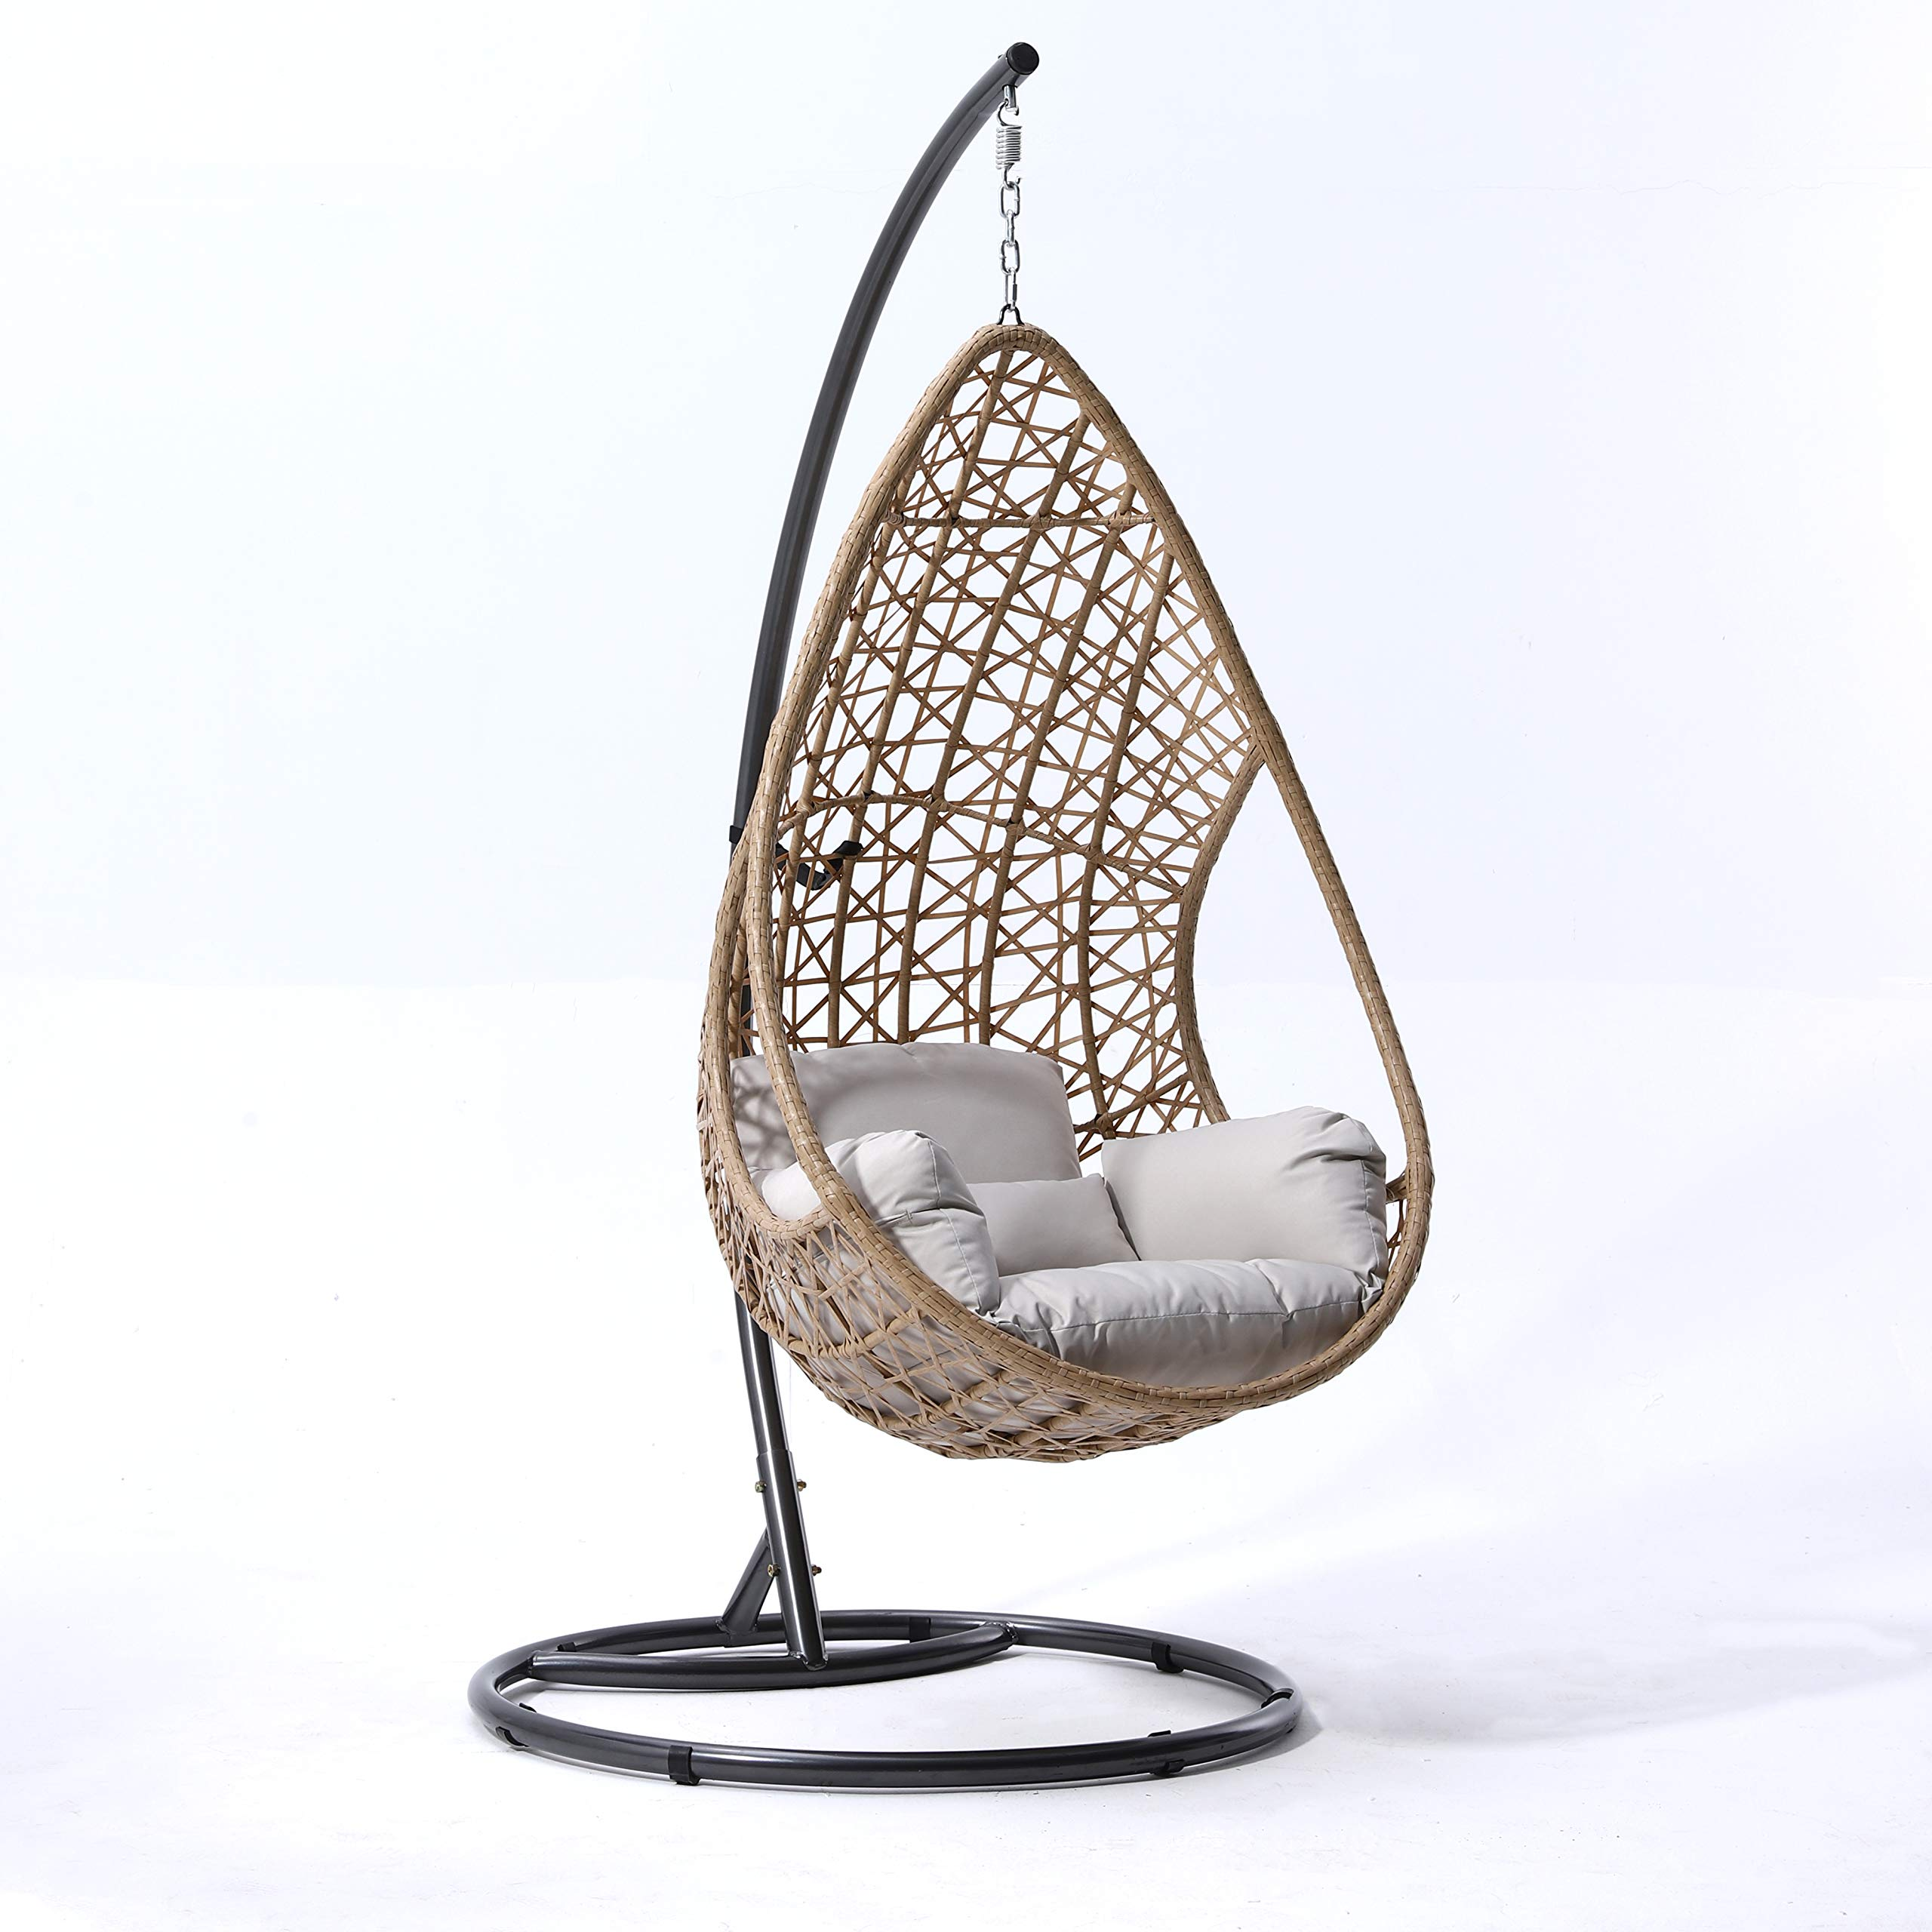 Cherry Tree Furniture Indra Rattan Effect Swing Chair, Hanging Egg Chair